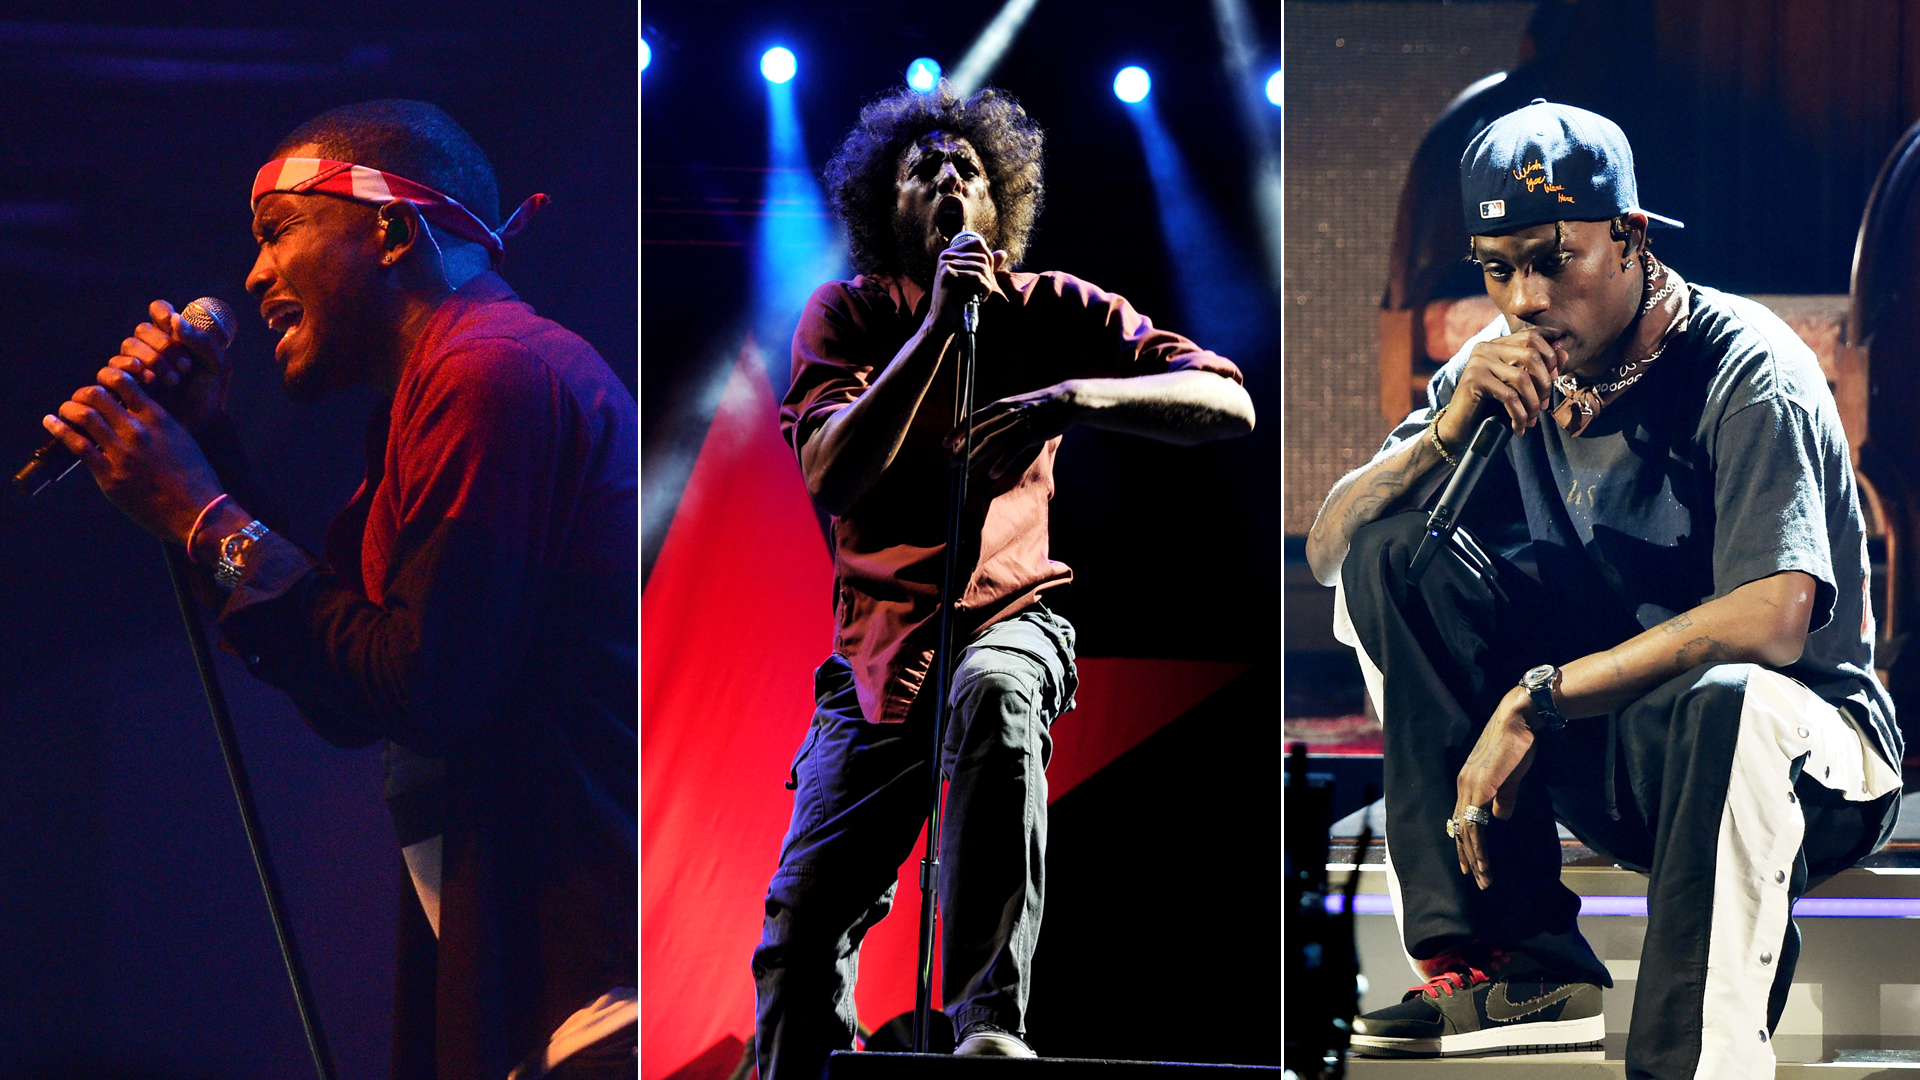 From left: Frank Ocean performs in New York City in 2012, singer Zack de la Rocha of Rage Against the Machine performs at the Los Angeles Memorial Coliseum in 2011 and Travis Scott performs at the Staples Center in February 2019. (Credit: Jason Kempin / Kevin Winter / Getty Images)